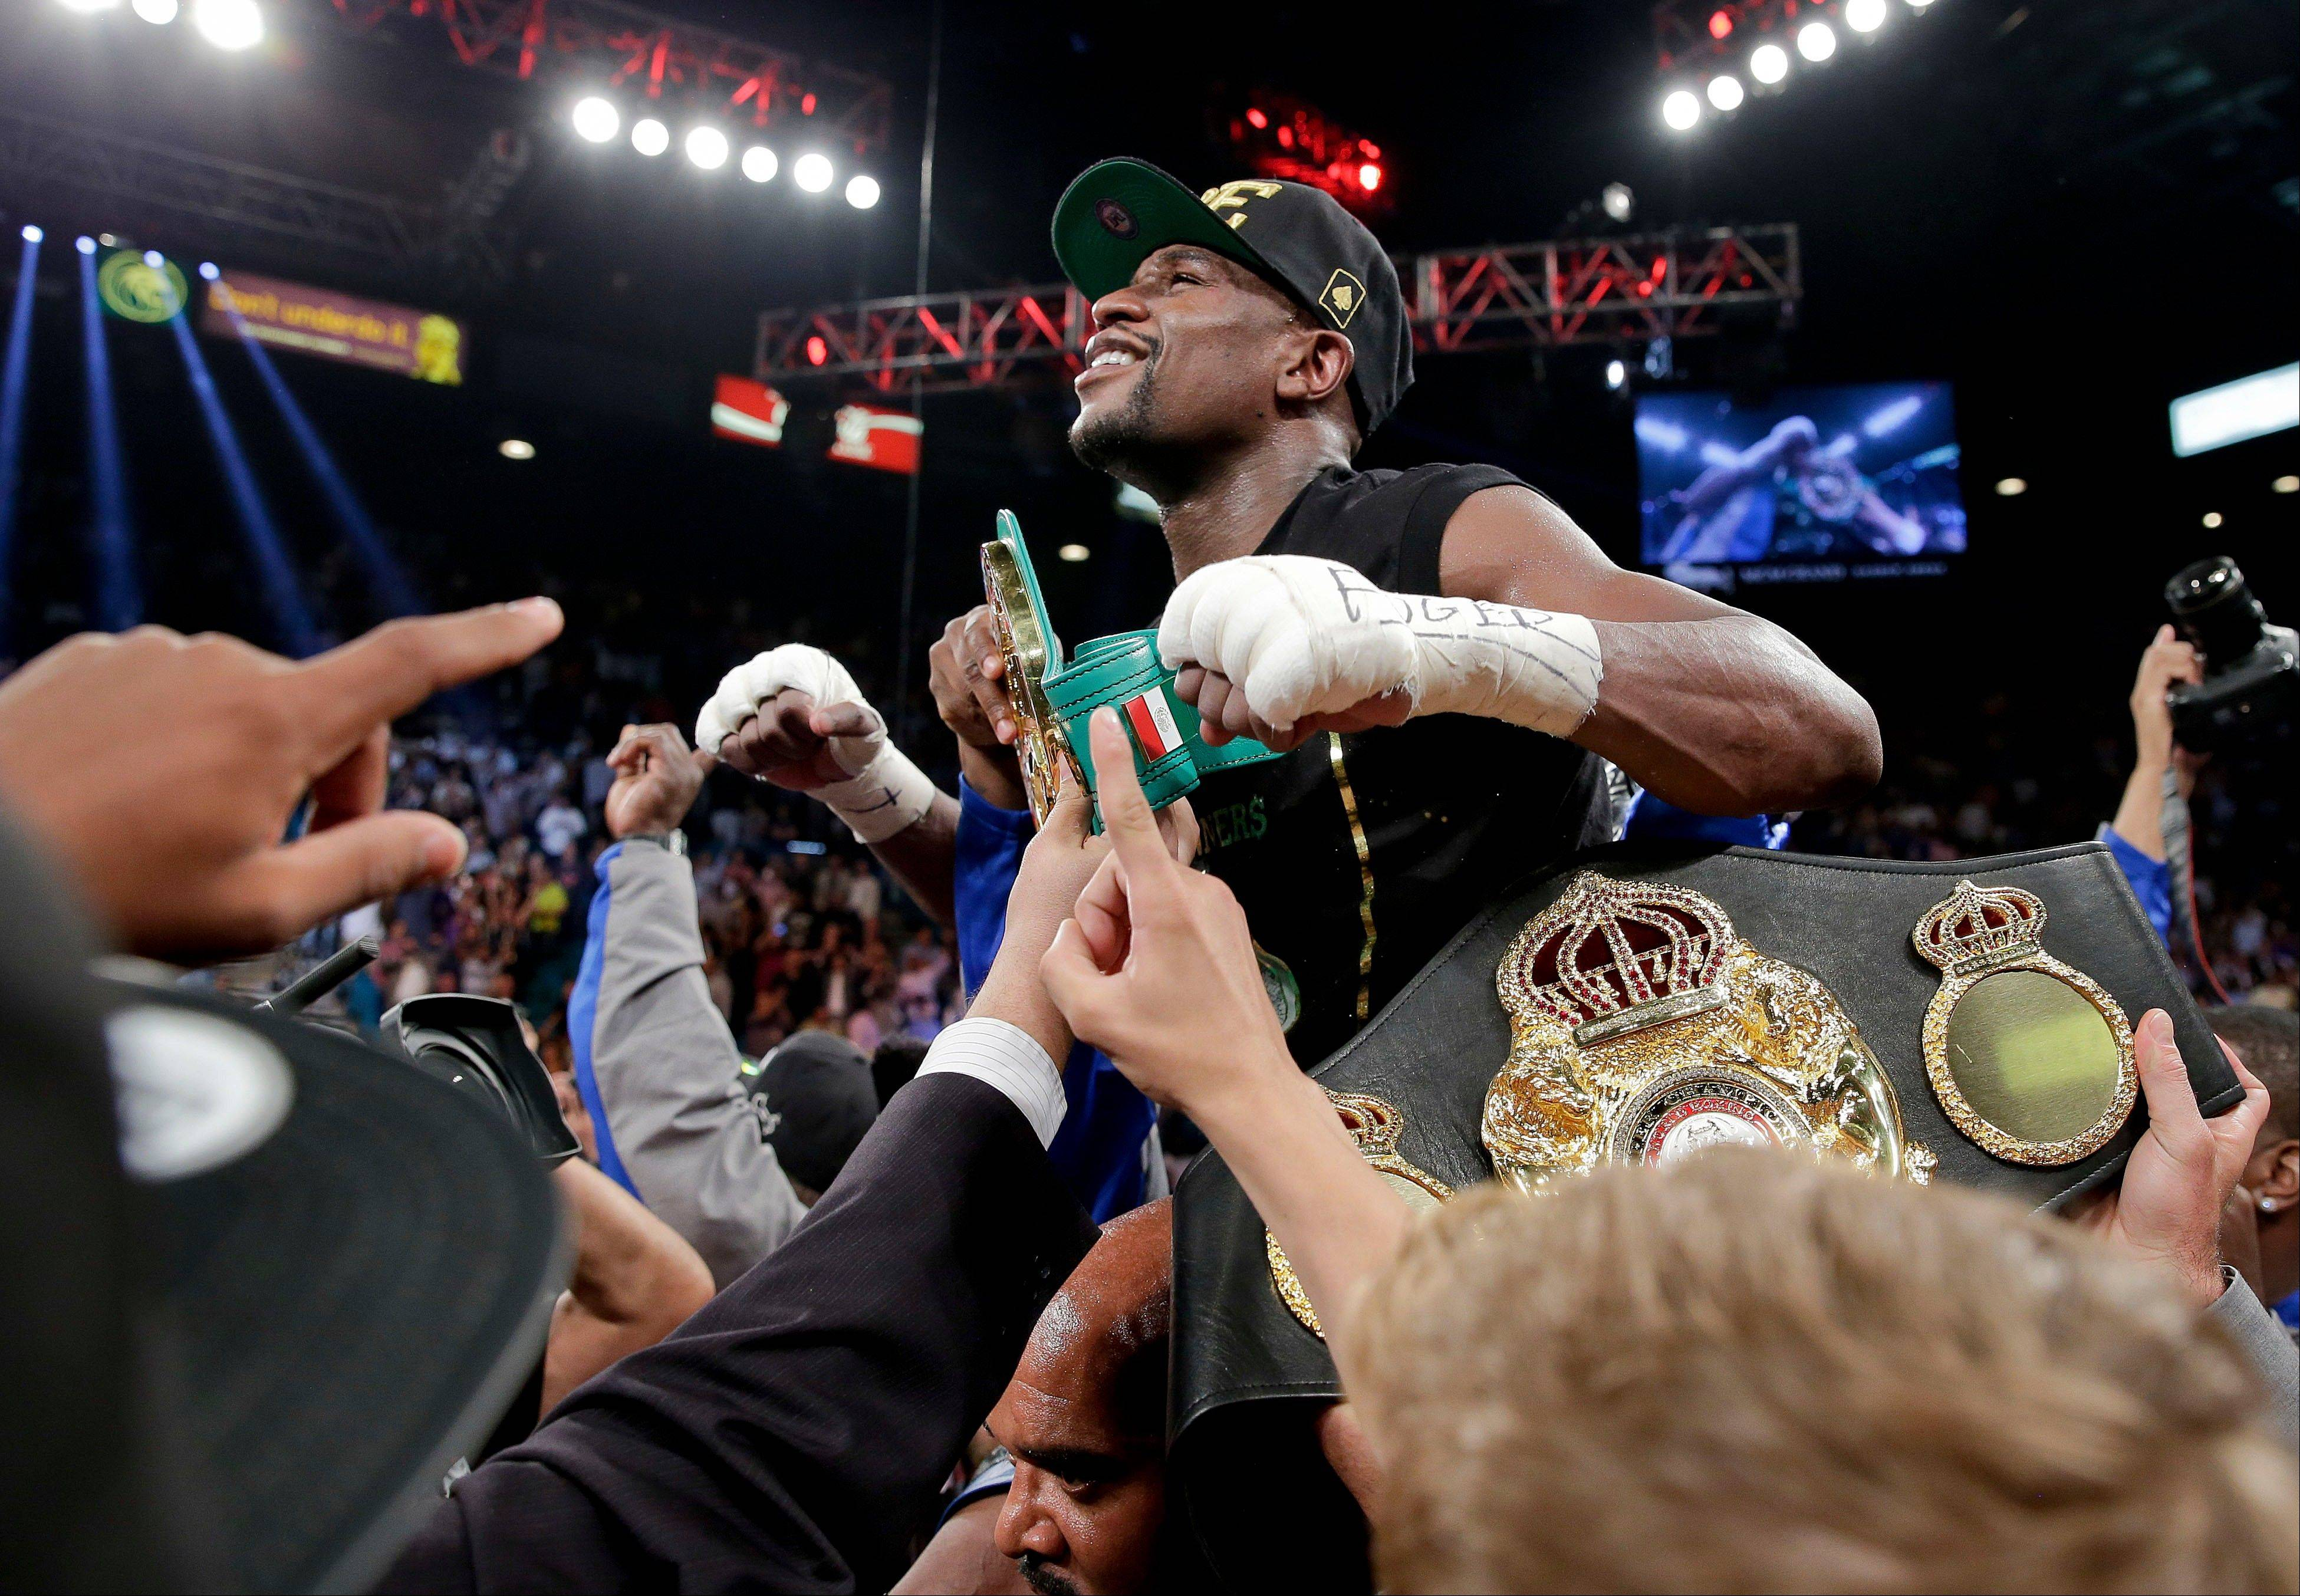 Floyd Mayweather Jr. celebrates after defeating Canelo Alvarez in a 152-pound title fight, Saturday, Sept. 14, 2013, in Las Vegas. (AP Photo/Eric Jamison)